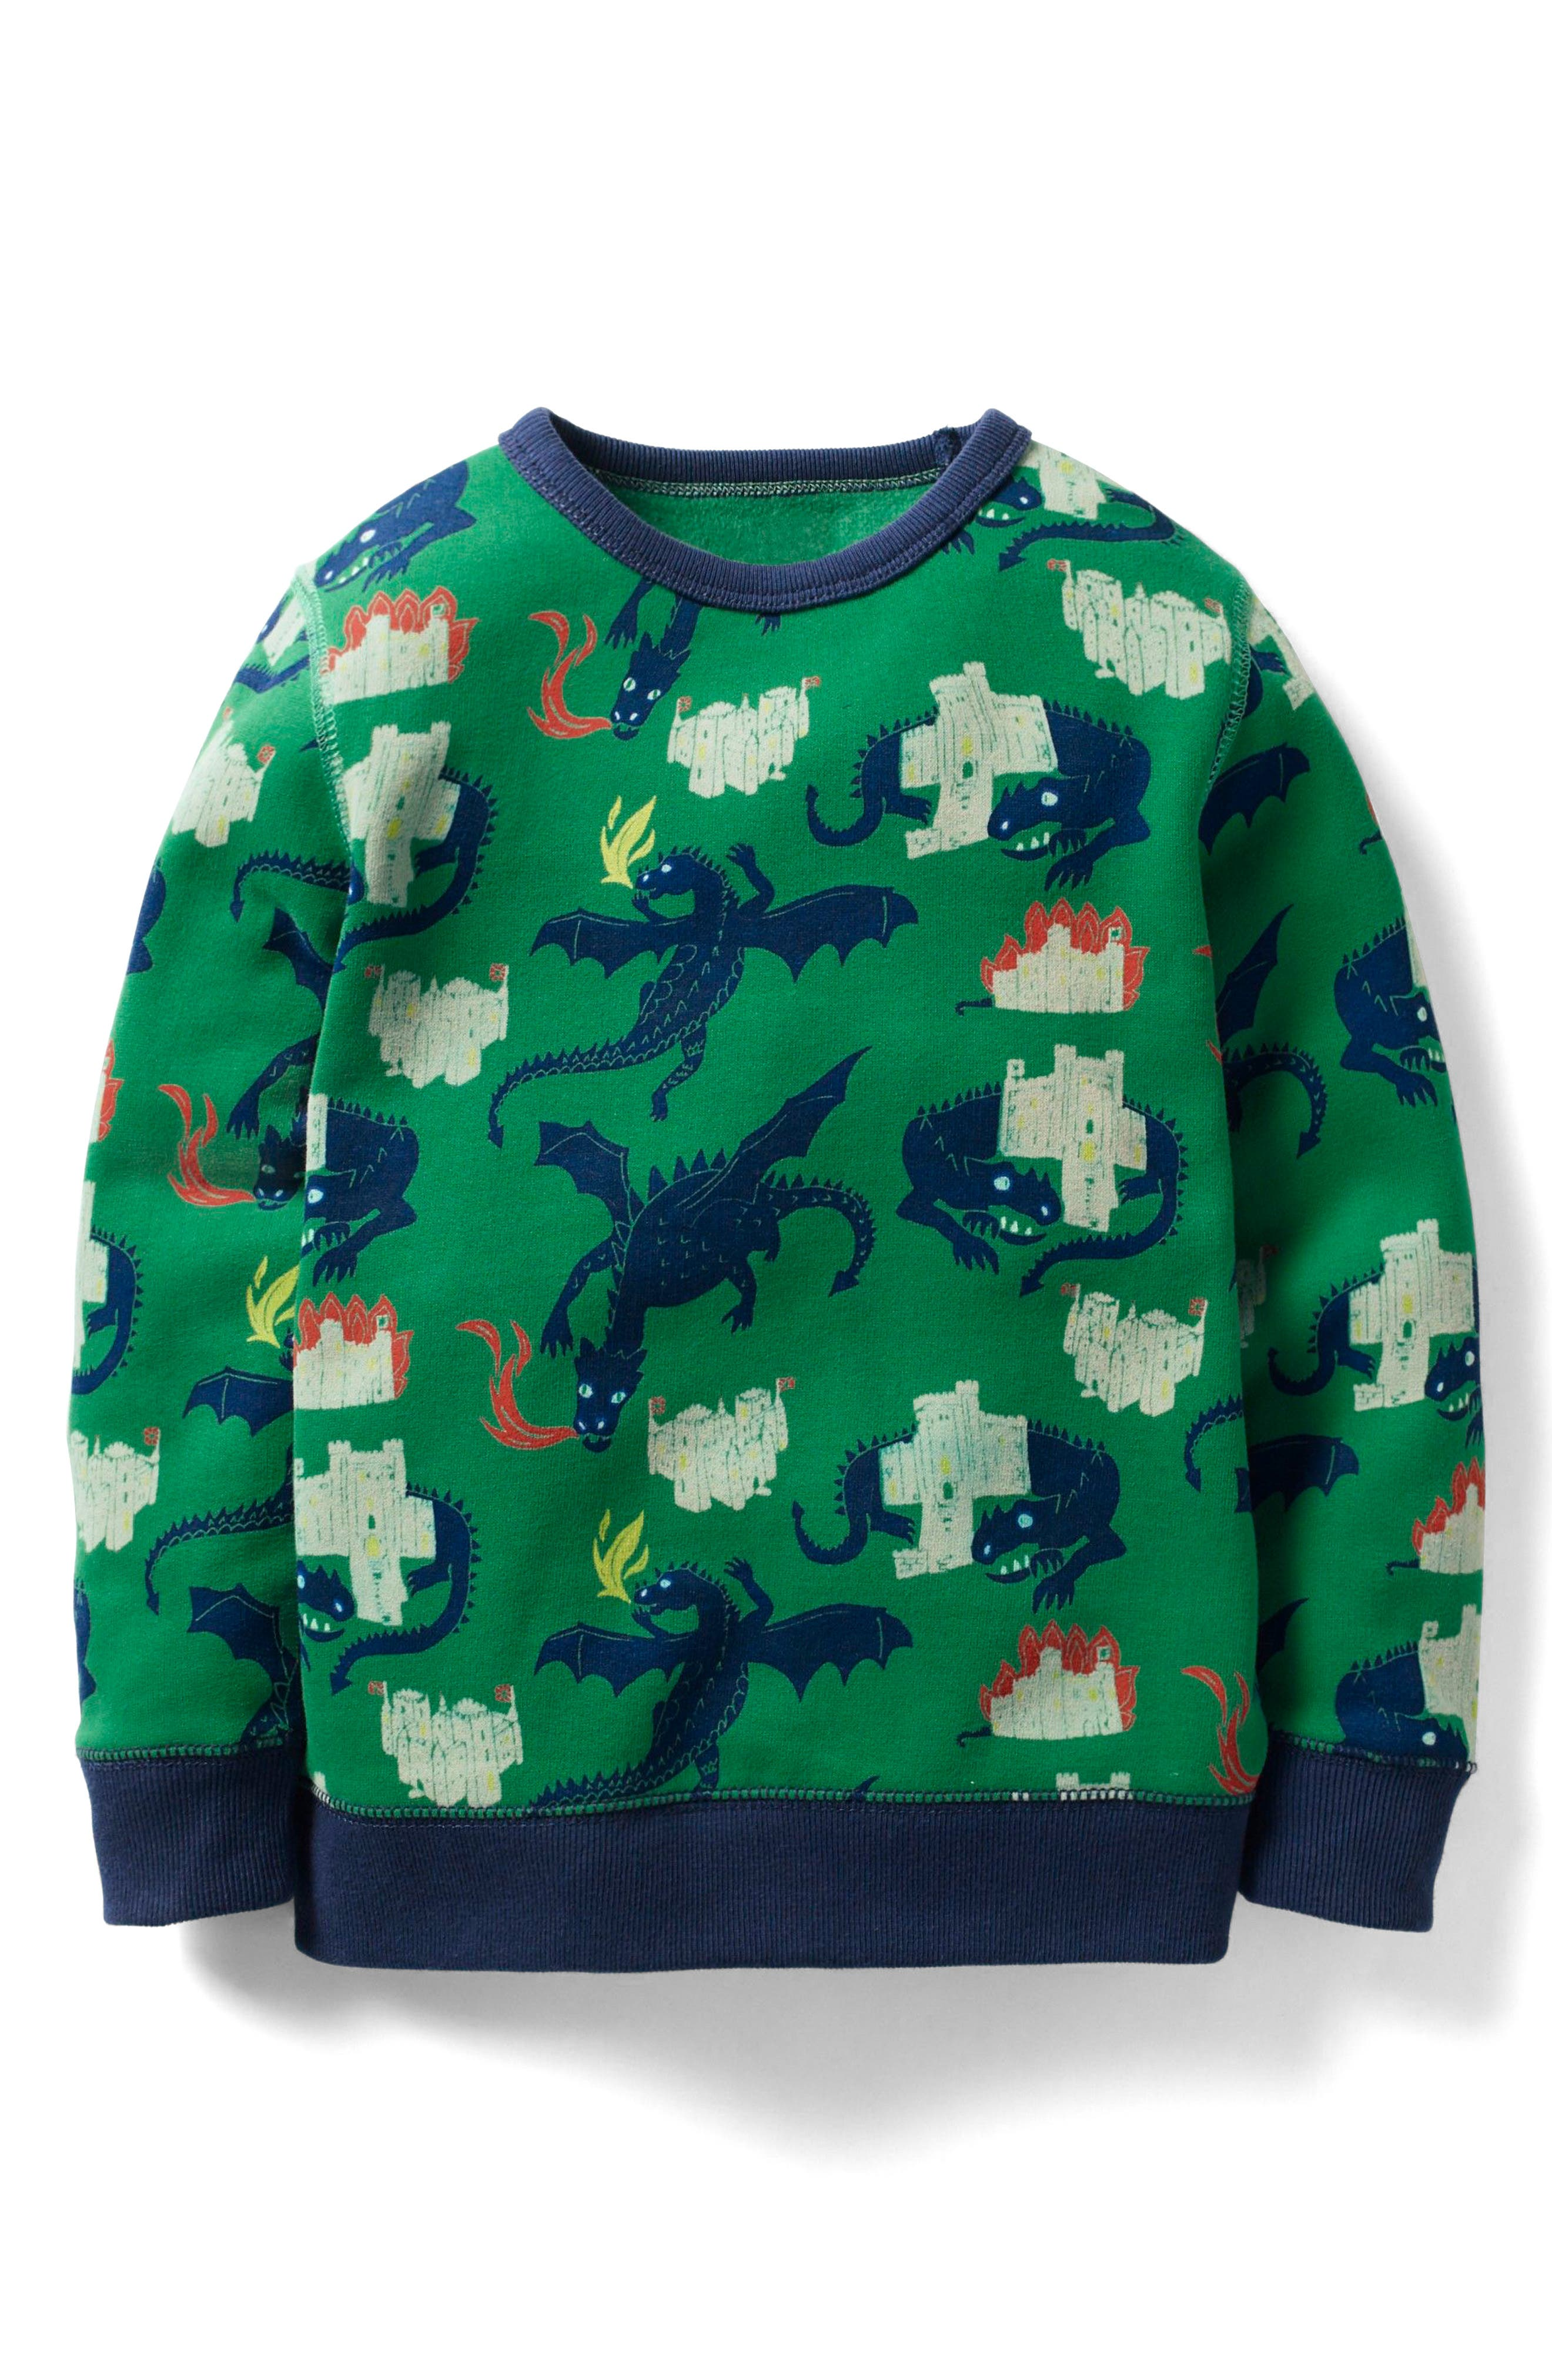 Hero's Tale Sweatshirt,                         Main,                         color, Crocodile Green Dragons